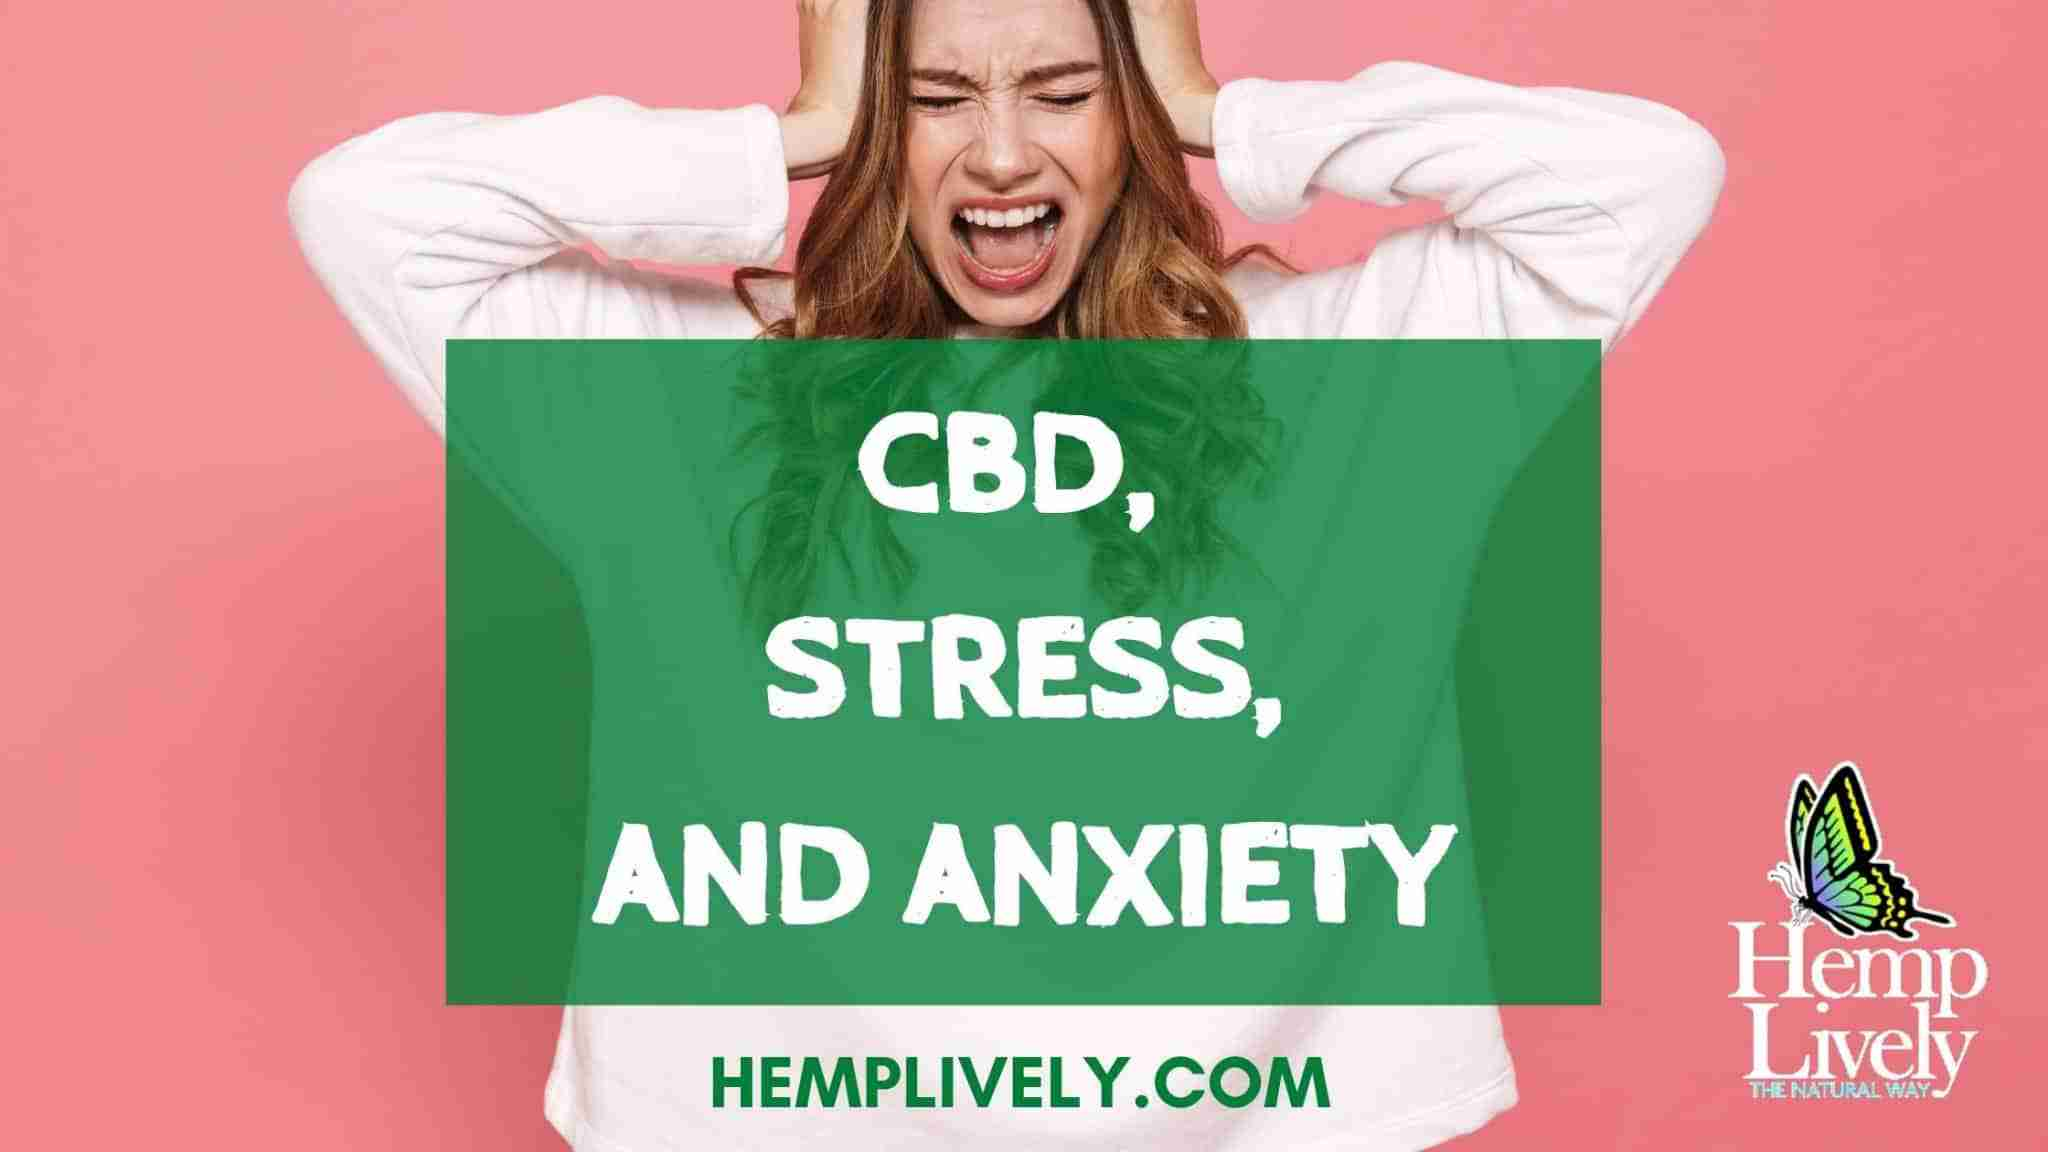 Can Hemp and CBD Help With Stress and Anxiety?